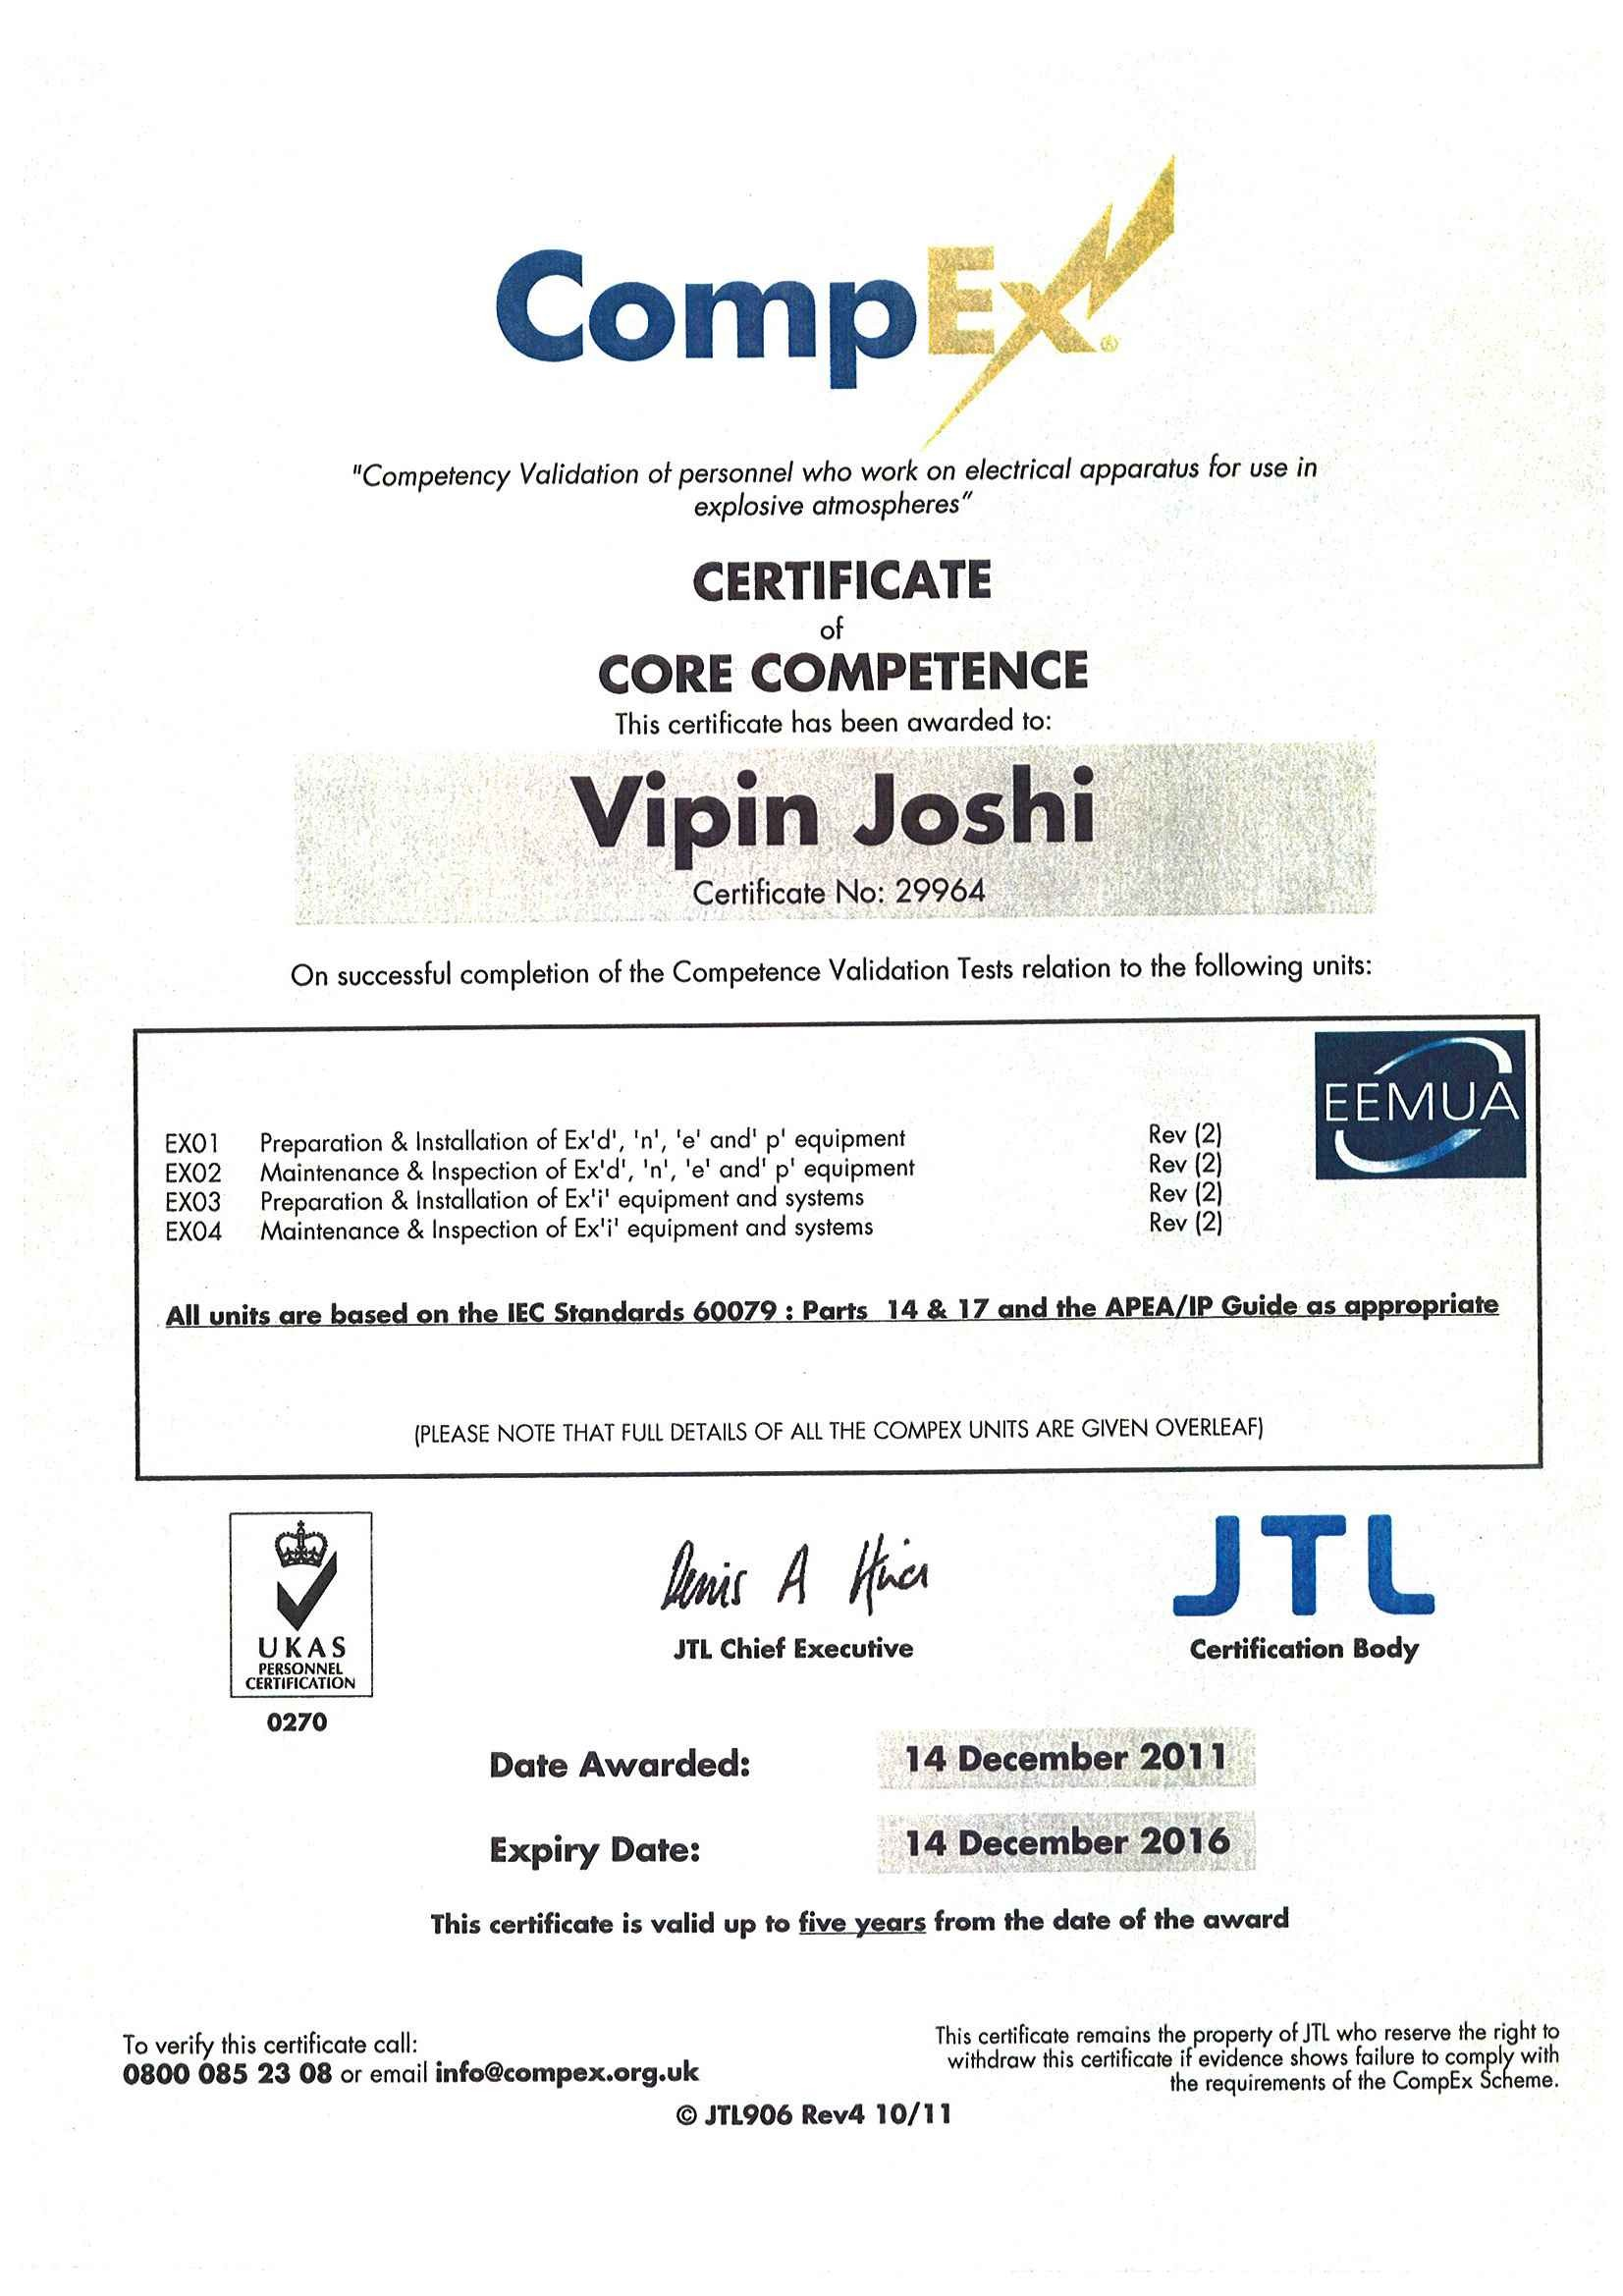 Electrical isolation certificate template choice image templates vipin joshi bayt compex jtl uk certificate alramifo choice image xflitez Image collections